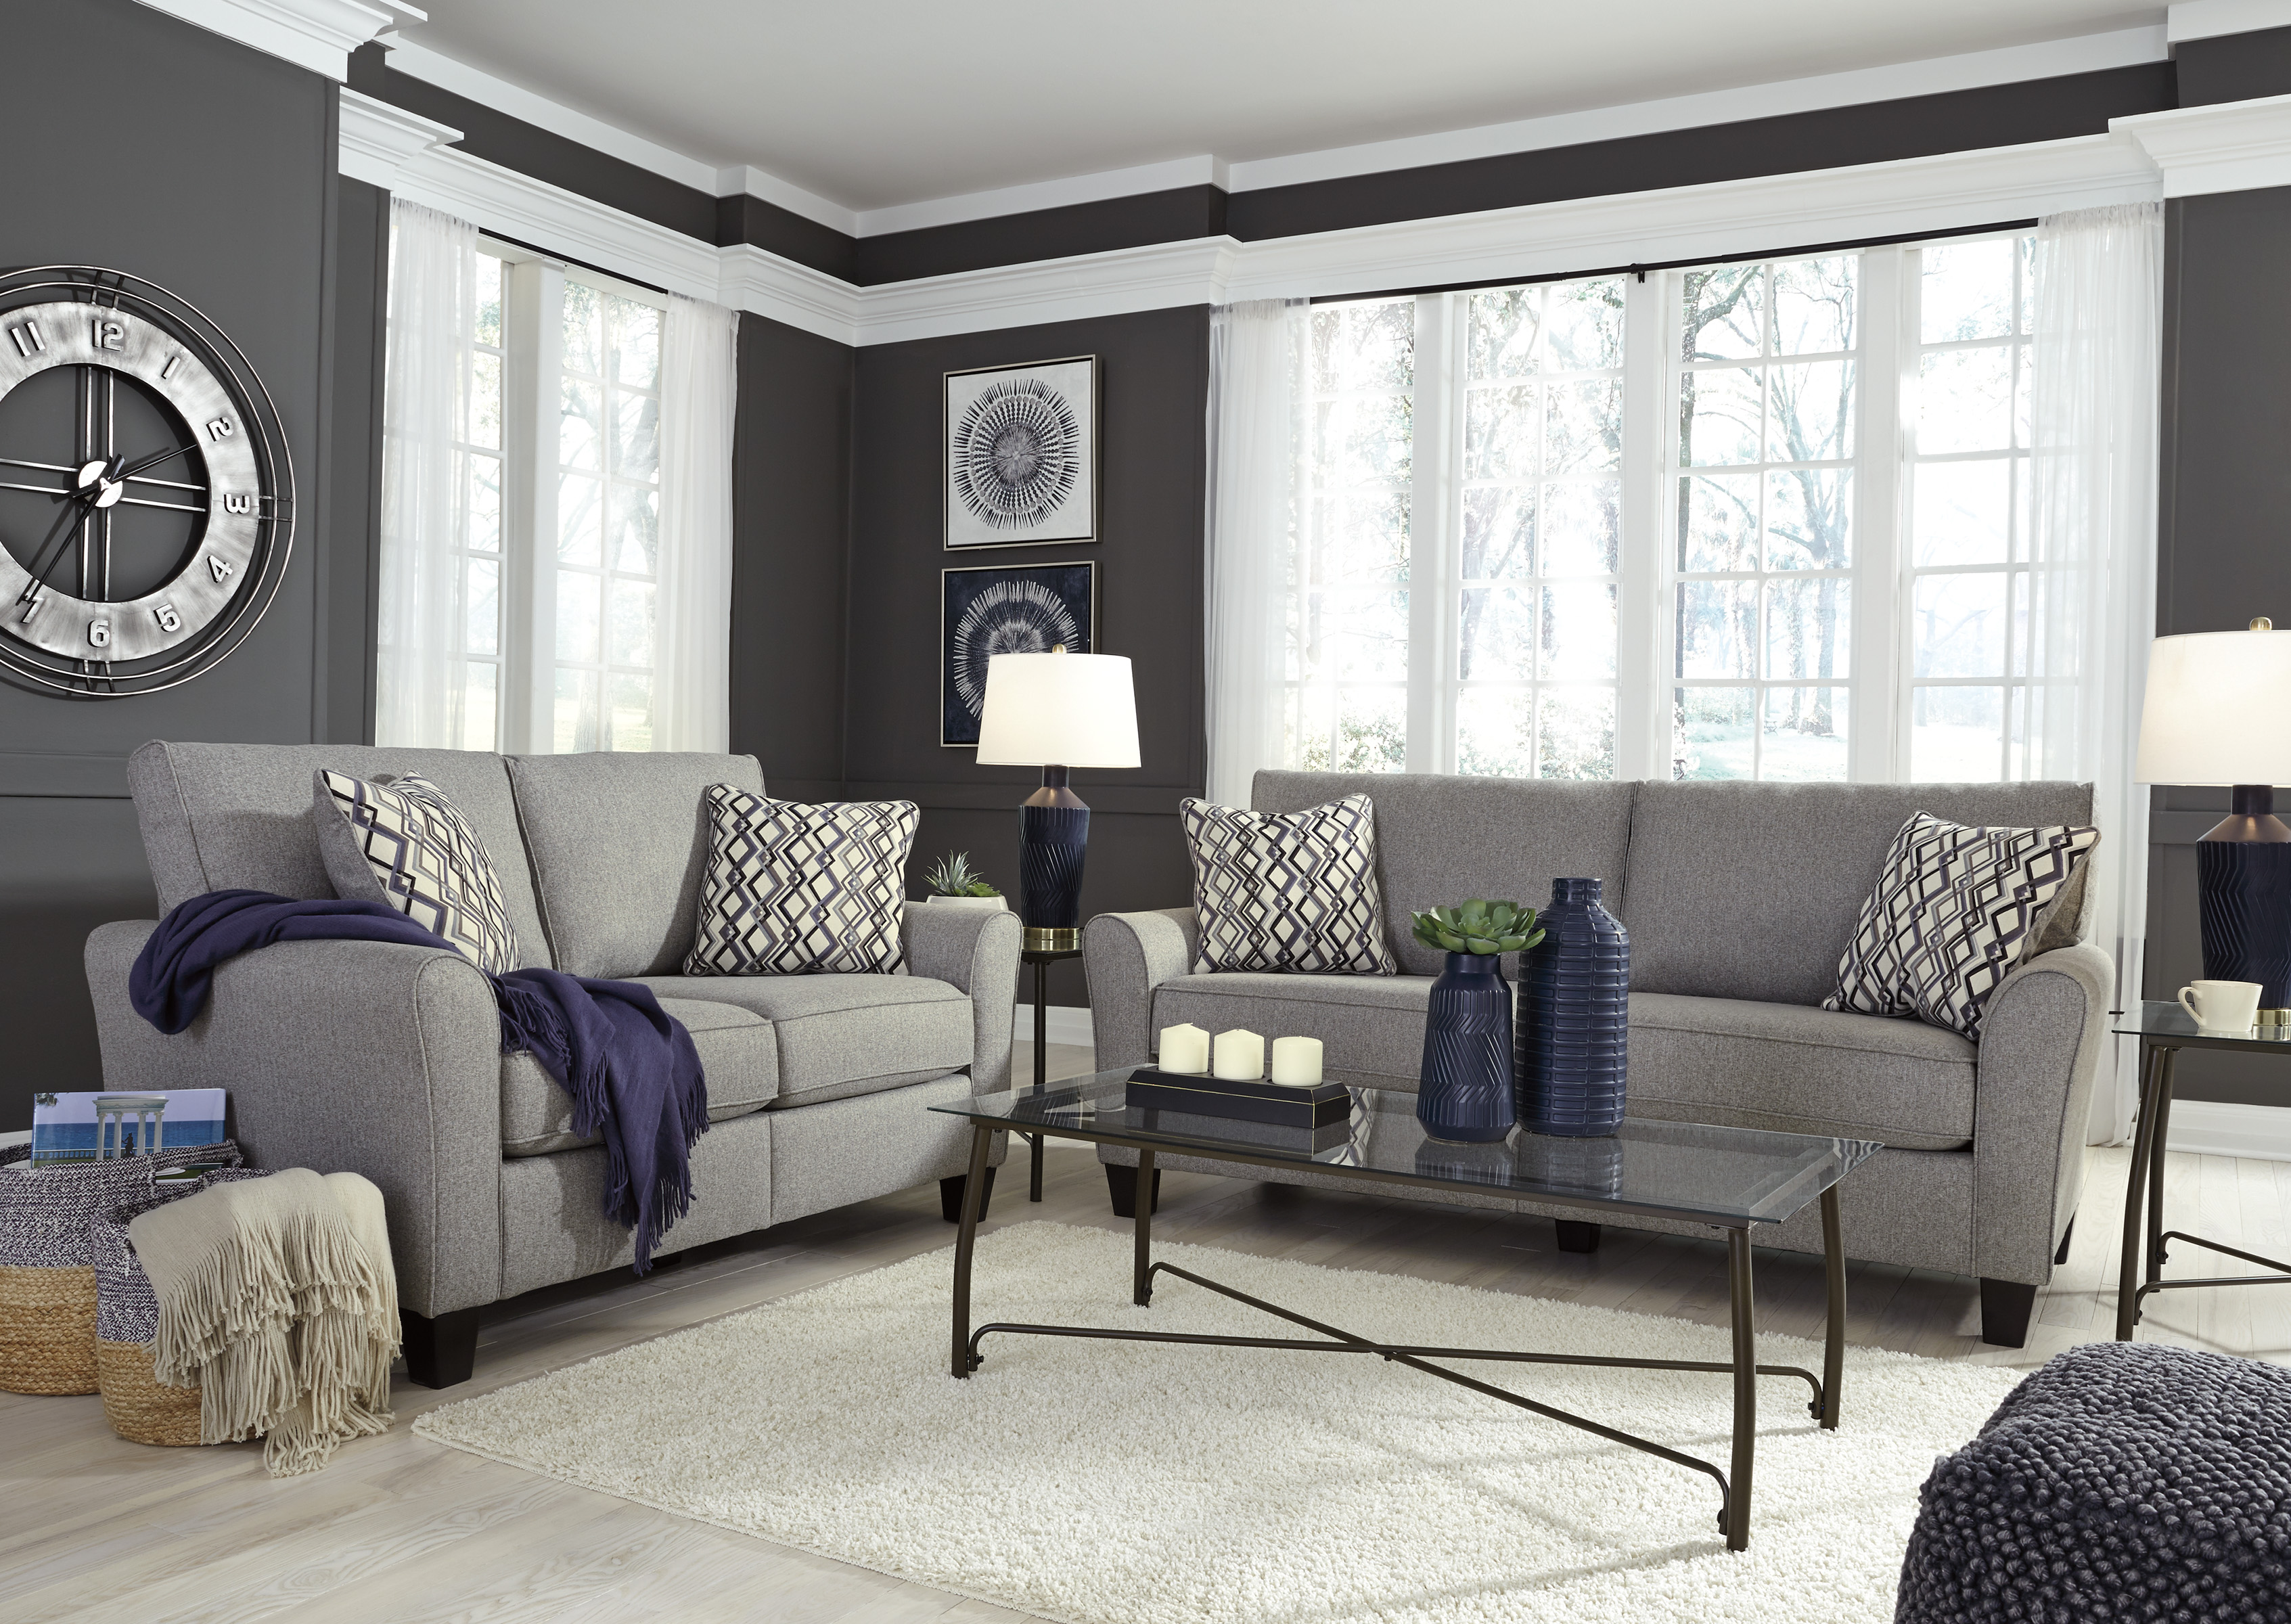 Strehela ( SOFA+LOVE SEAT), 33101, Sofa Sets by Midha Furniture to Brampton, Mississauga, Etobicoke, Toronto, Scraborough, Caledon, Oakville, Markham, Ajax, Pickering, Oshawa, Richmondhill, Kitchener, Hamilton and GTA area